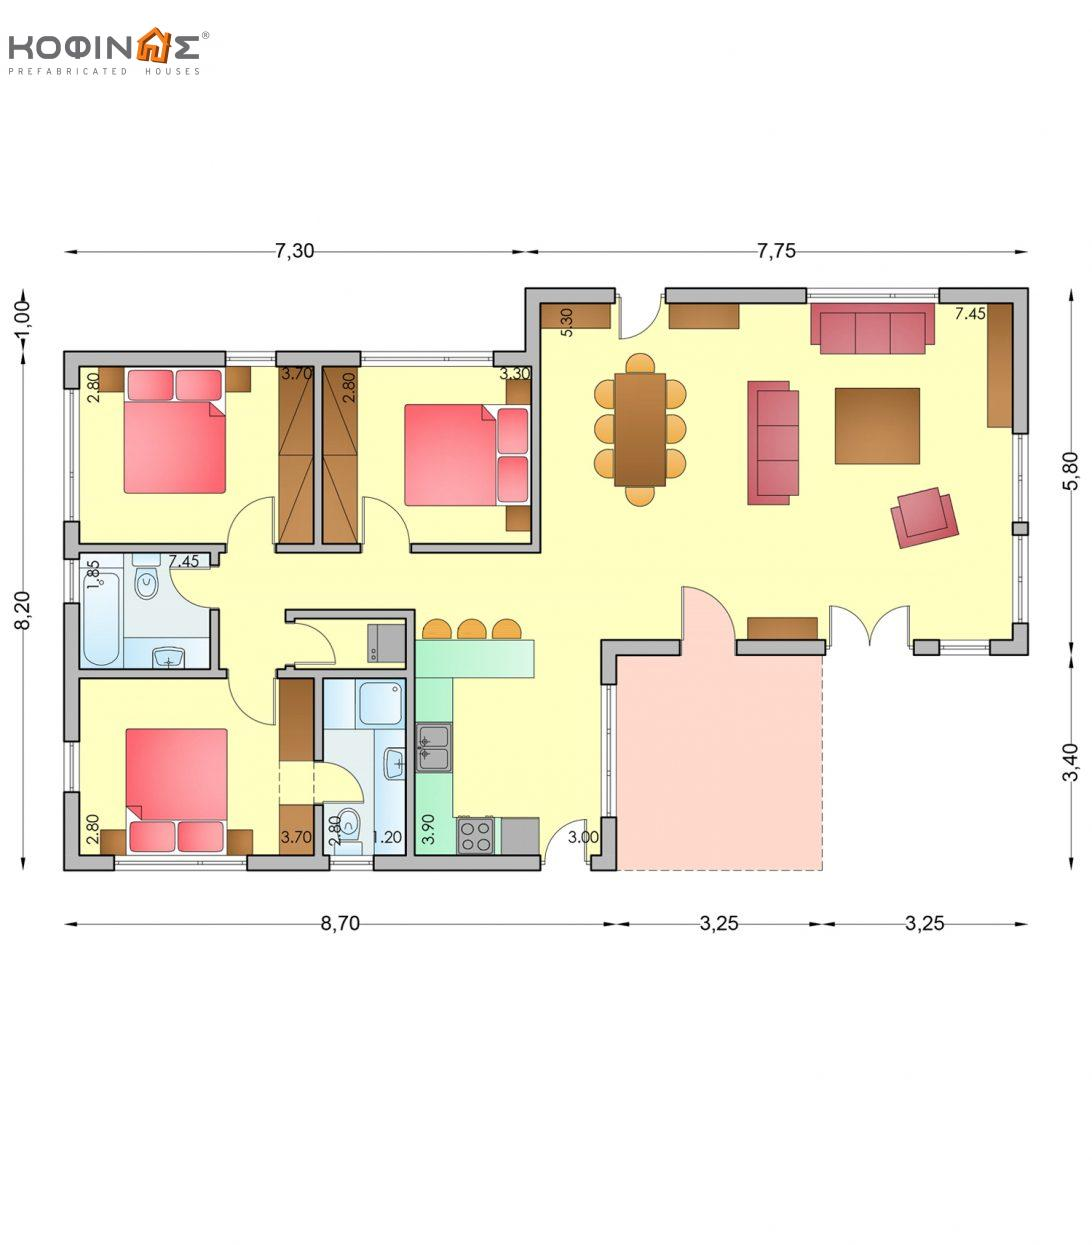 1-story house I-110, total surface of 110,70 m²